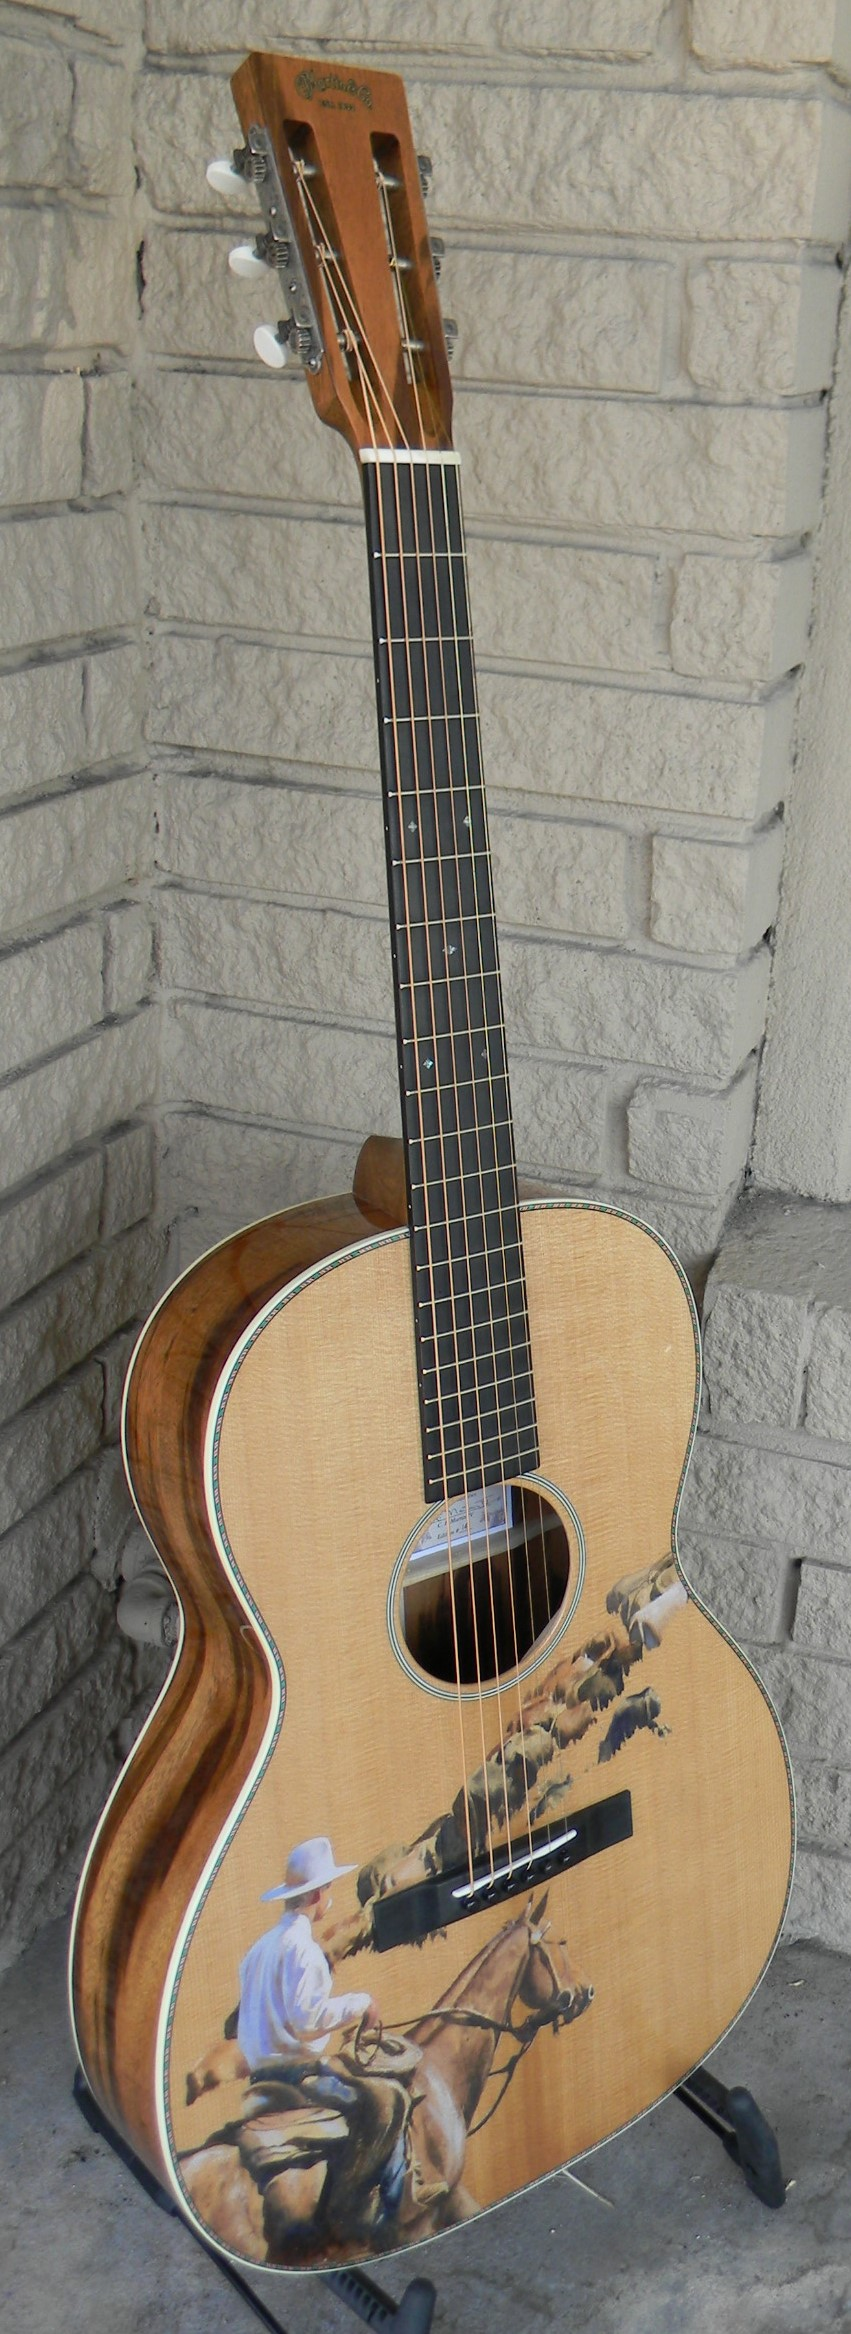 Martin Cowboy LE 2015. Made of torrefied VTS sitka spruce and Goncalo Alves. Instantly collectible # 14 of a small run for 2015. List : $3,999 Sale: $3,099